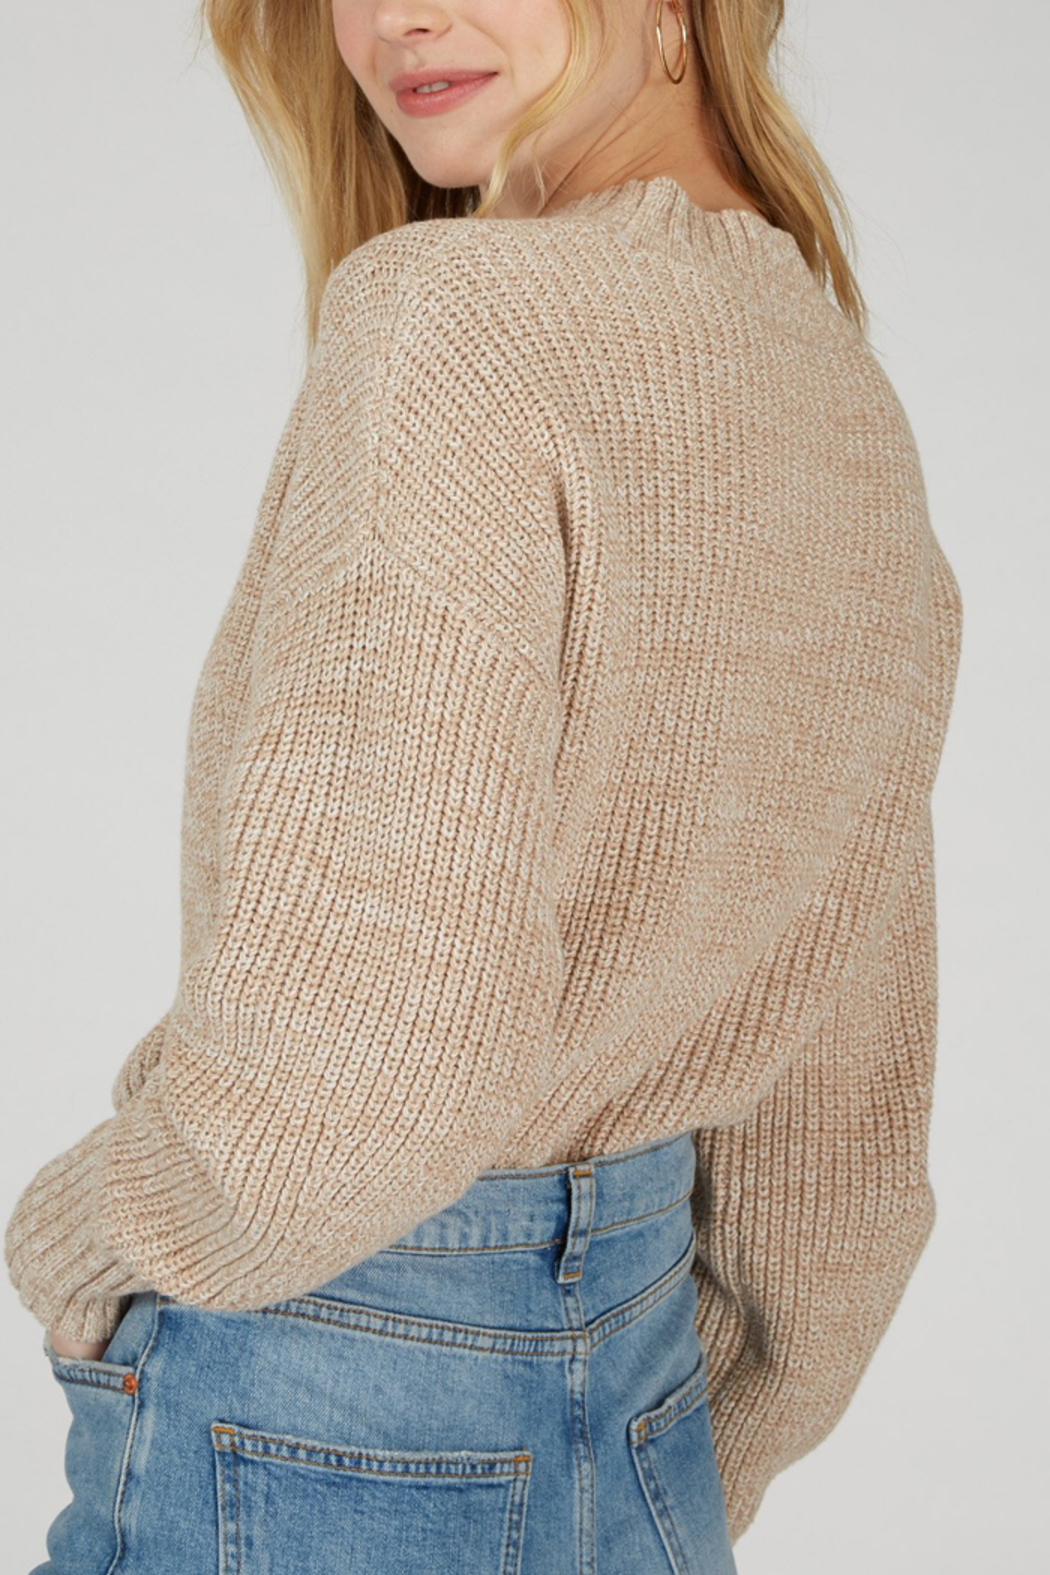 525 America 525 AMERICA COTTON CROPPED SWEATER - Back Cropped Image